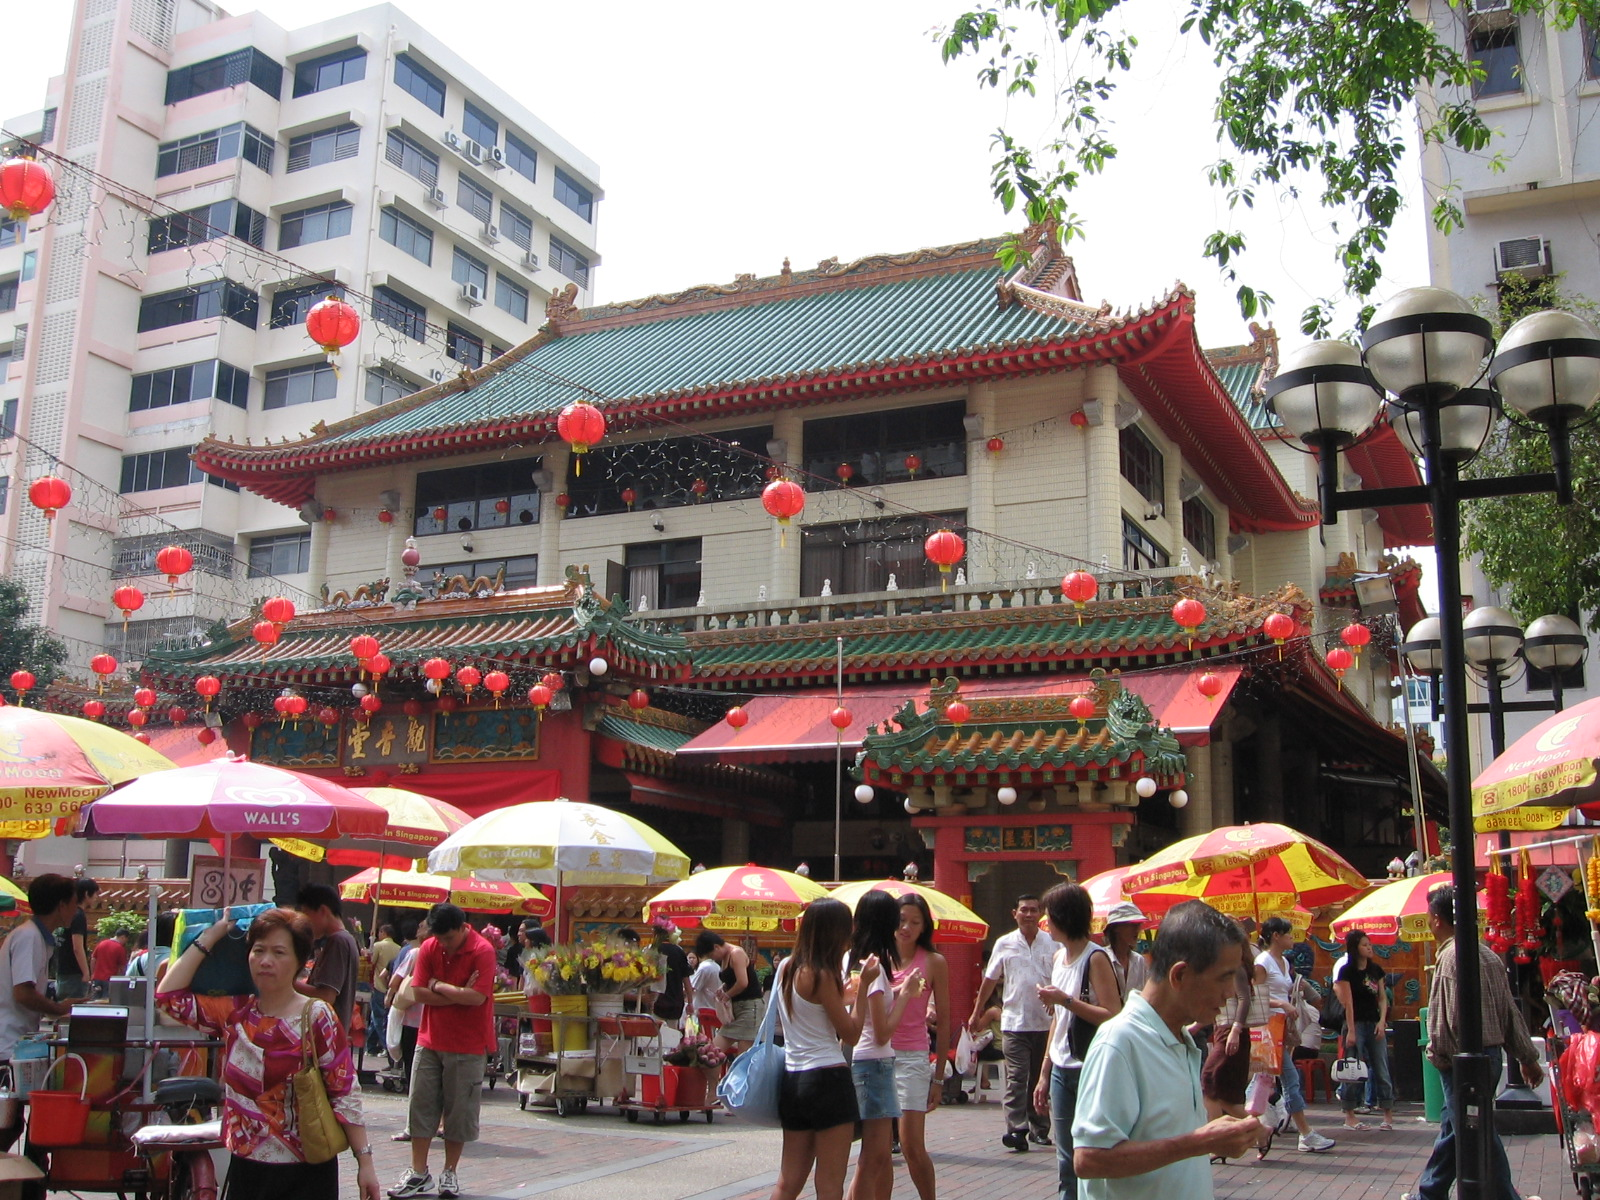 Kuan Yin Thong Hood Cho Temple Singapore Location Attractions Map,Location Attractions Map of Kuan Yin Thong Hood Cho Temple Singapore,Kuan Yin Thong Hood Cho Temple Singapore accommodation destinations hotels map reviews photos pictures